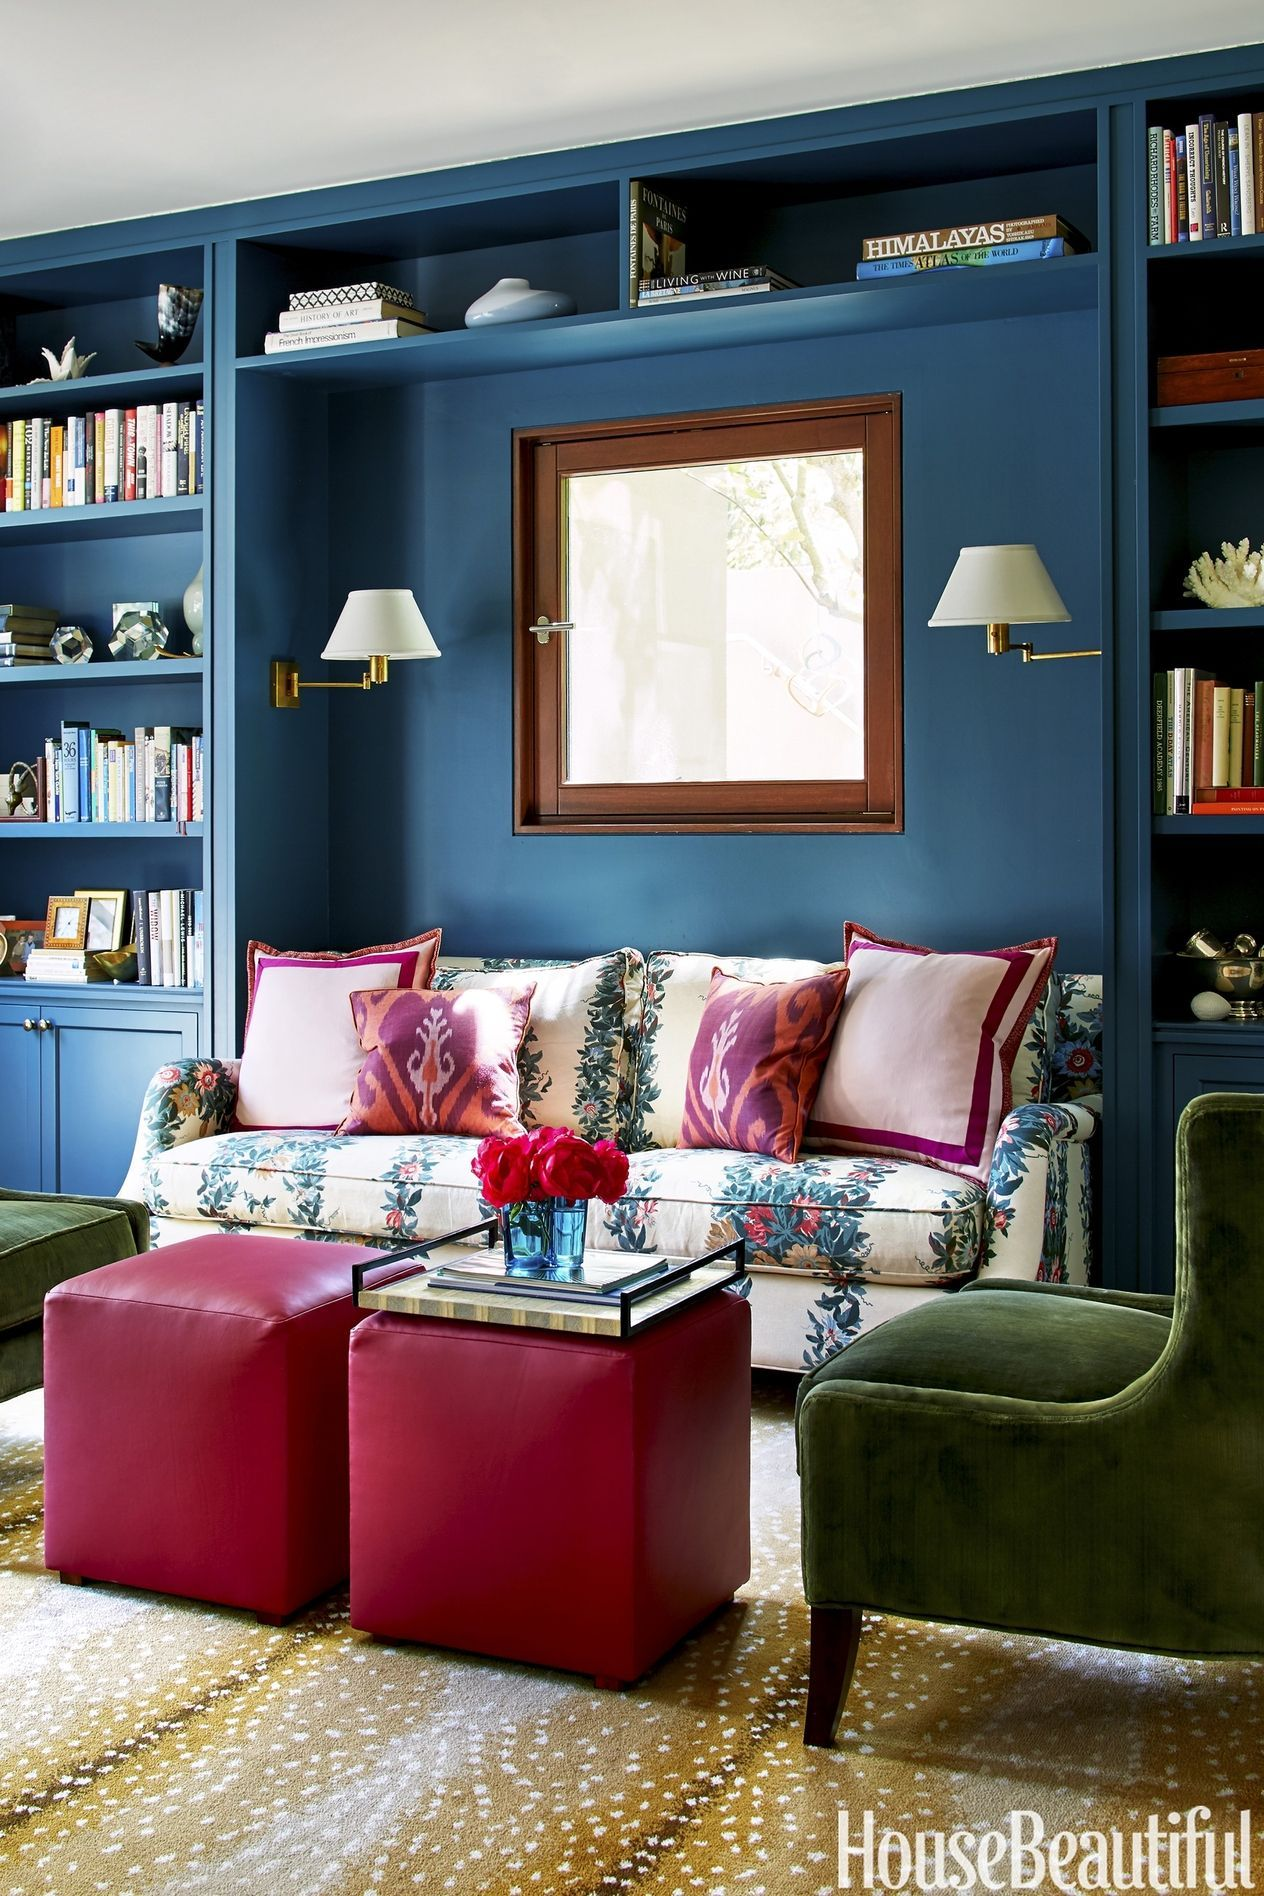 Merveilleux Small Living Room Styling Ideas